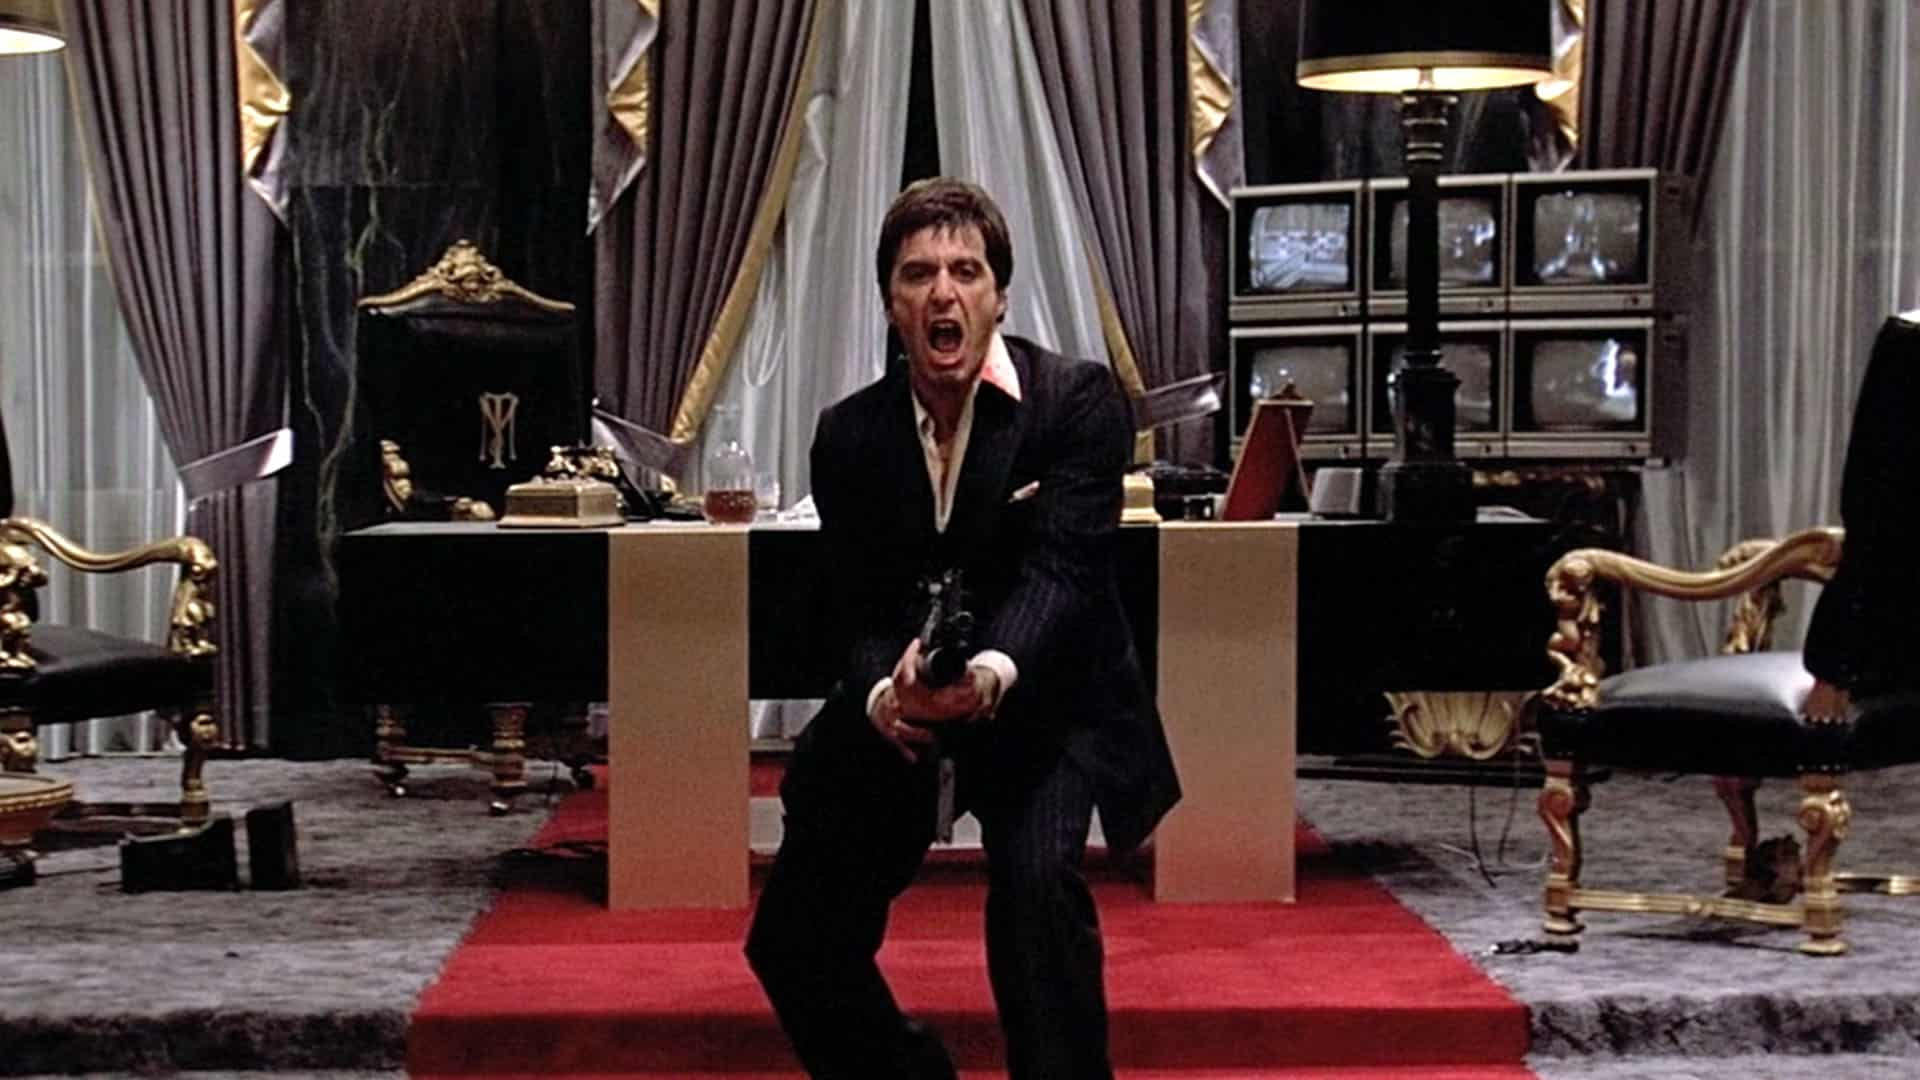 Say hello to my little friend scene from Scarface, which is one of the best gangster movies out there.